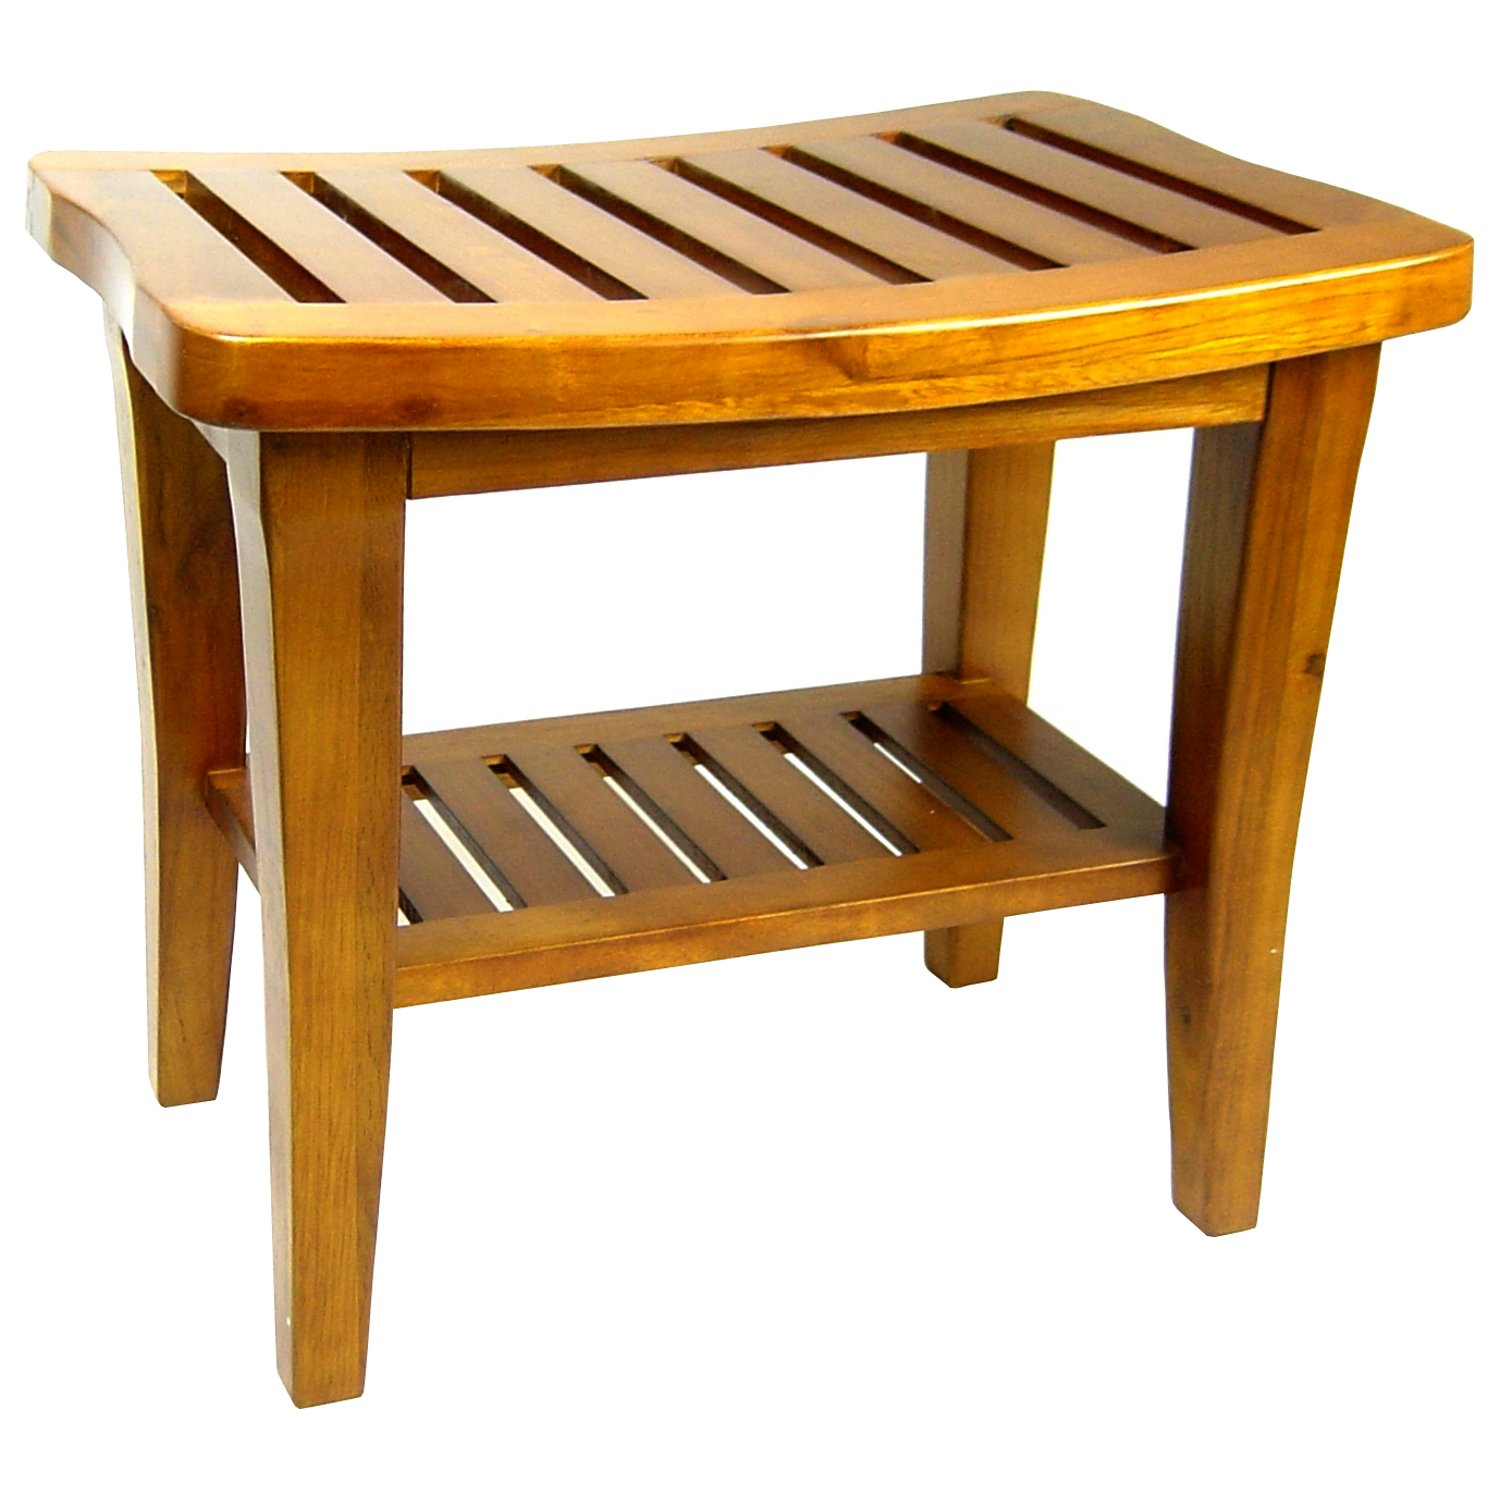 Amazon.com: Redmon Genuine Teak Bench: Home & Kitchen